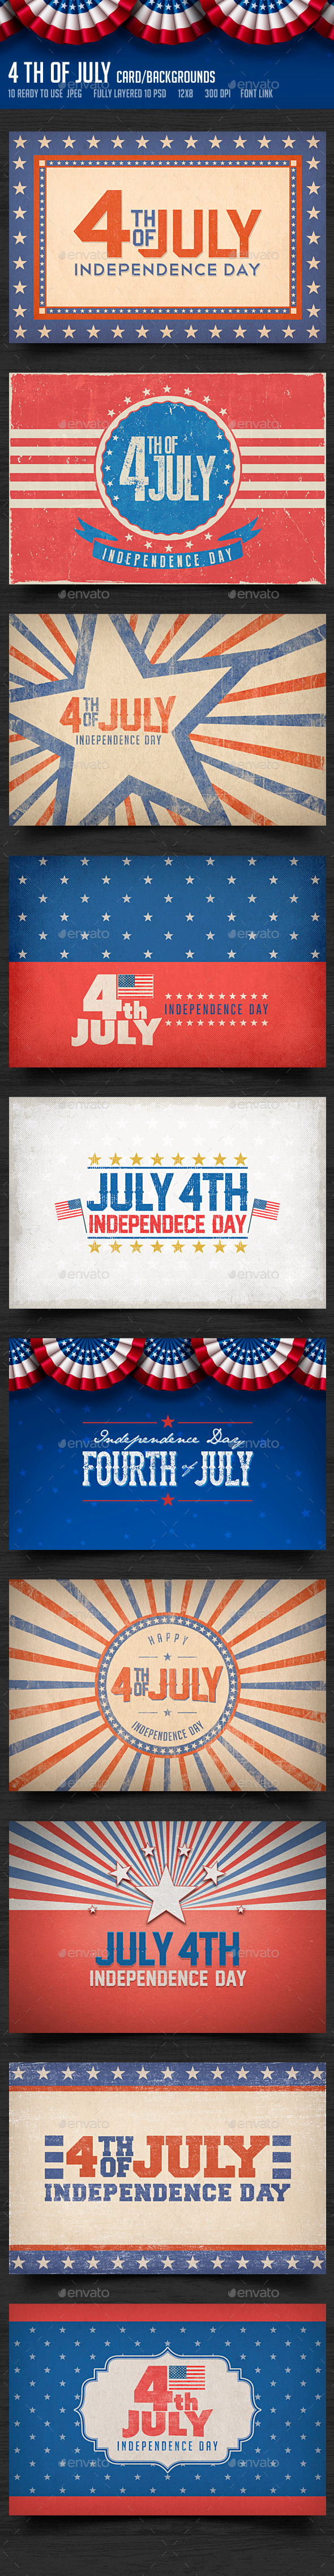 GraphicRiver July 4th Backgrounds Cards 2 11590638